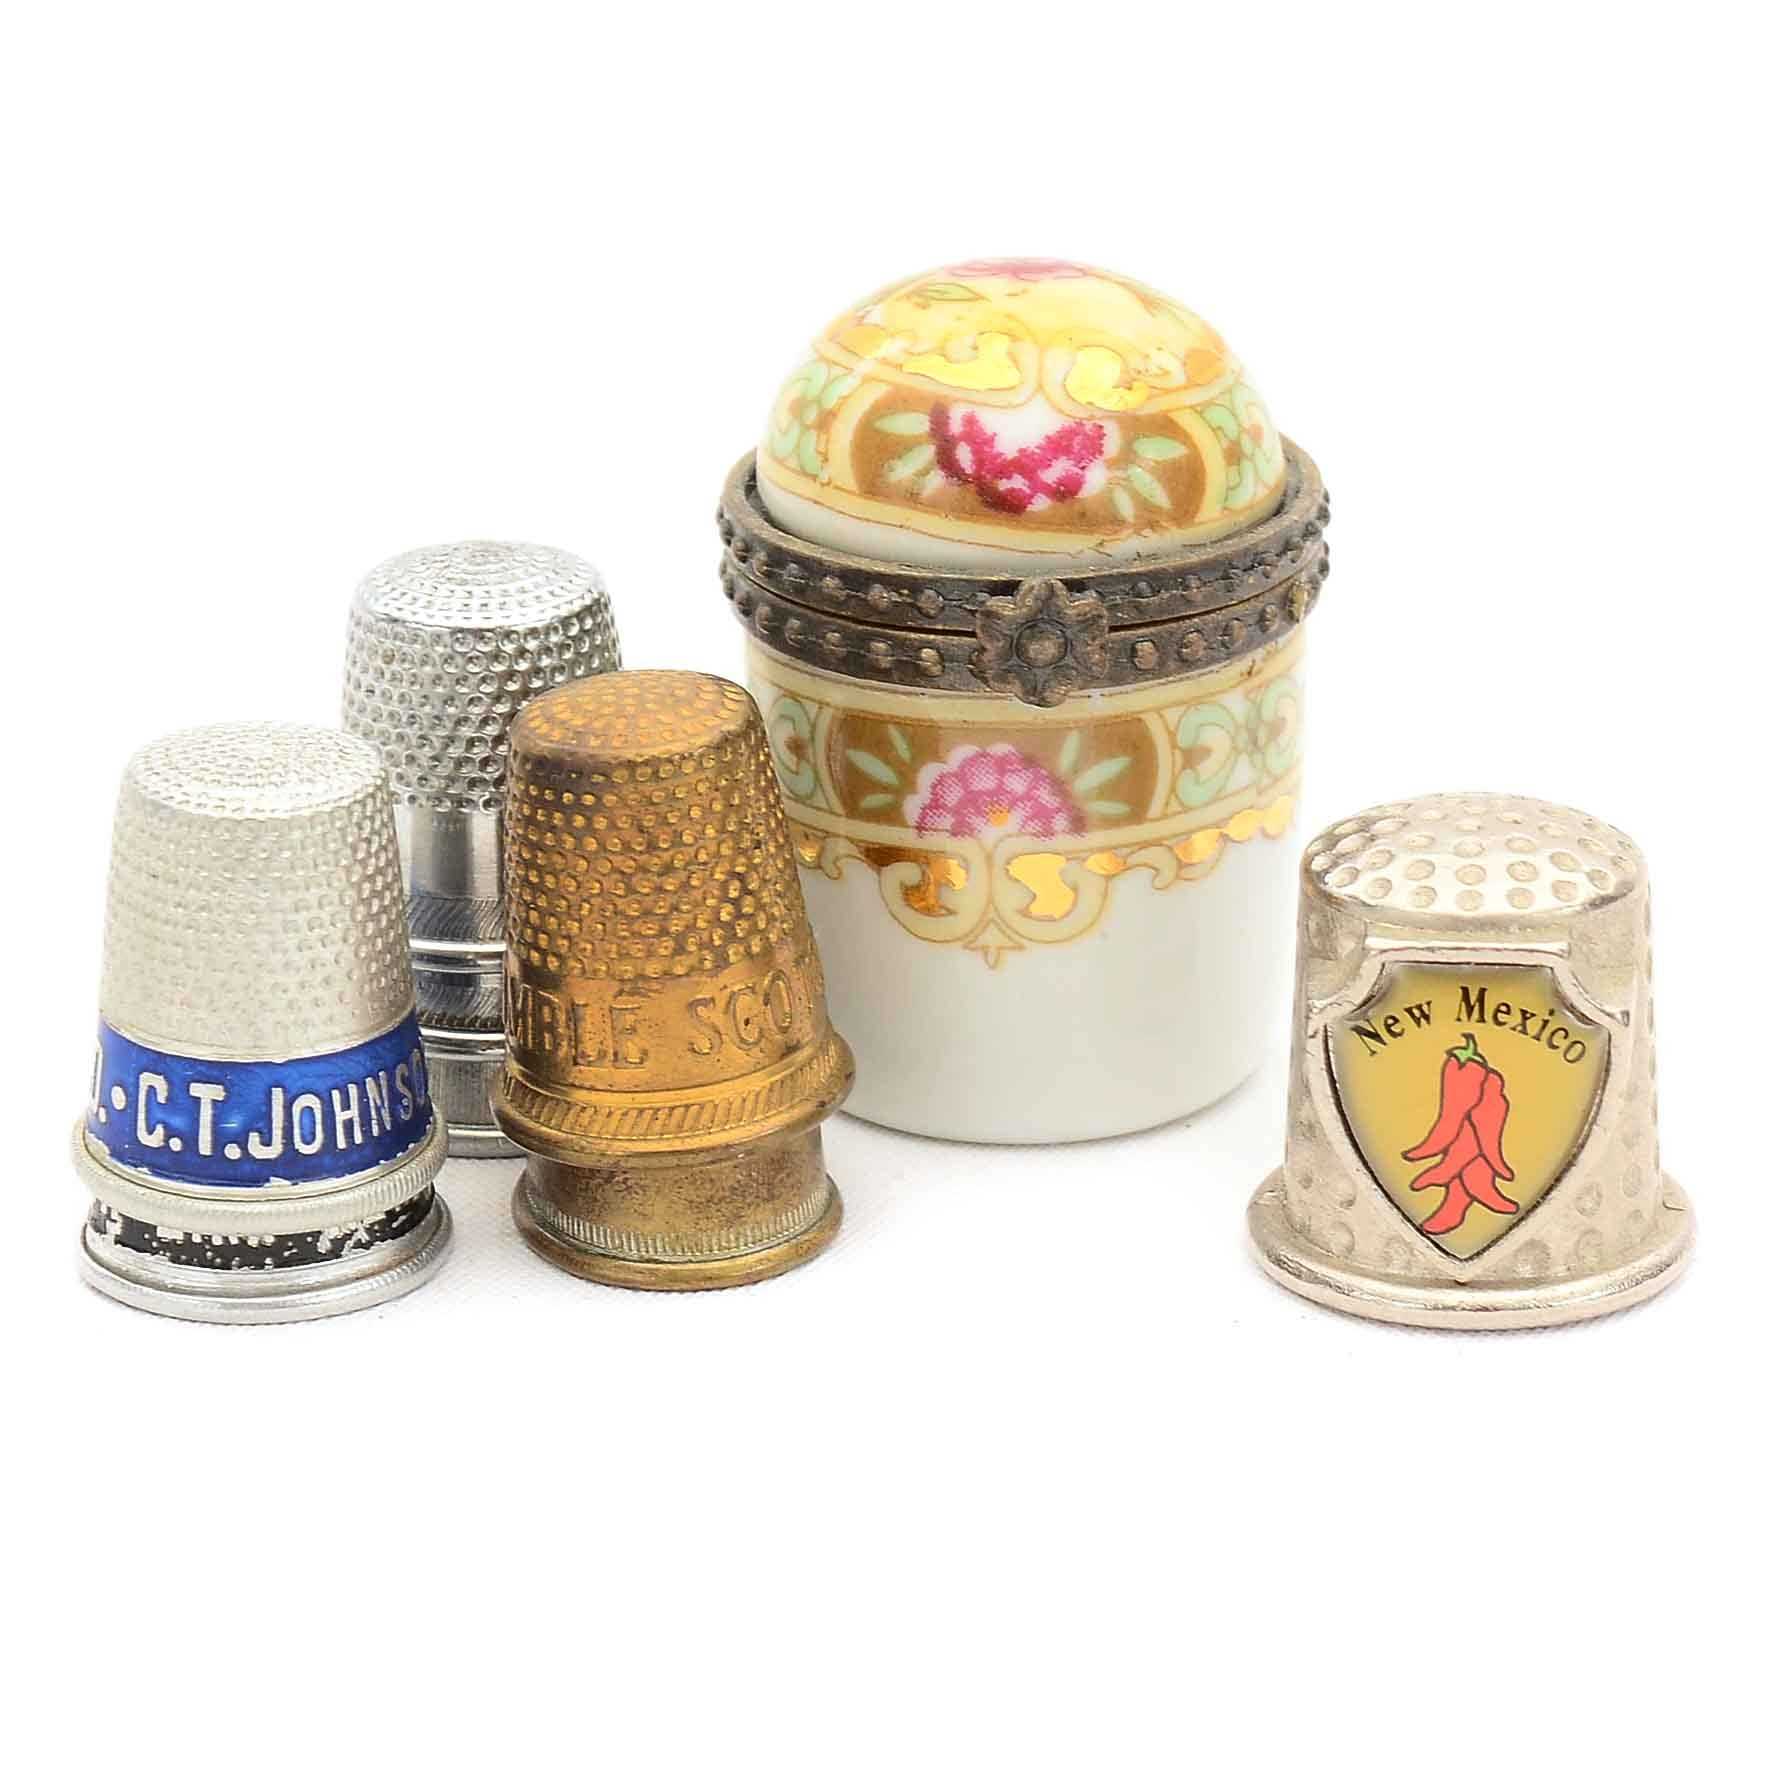 Hand Painted Limoges Trinket Box and Assorted Thimbles